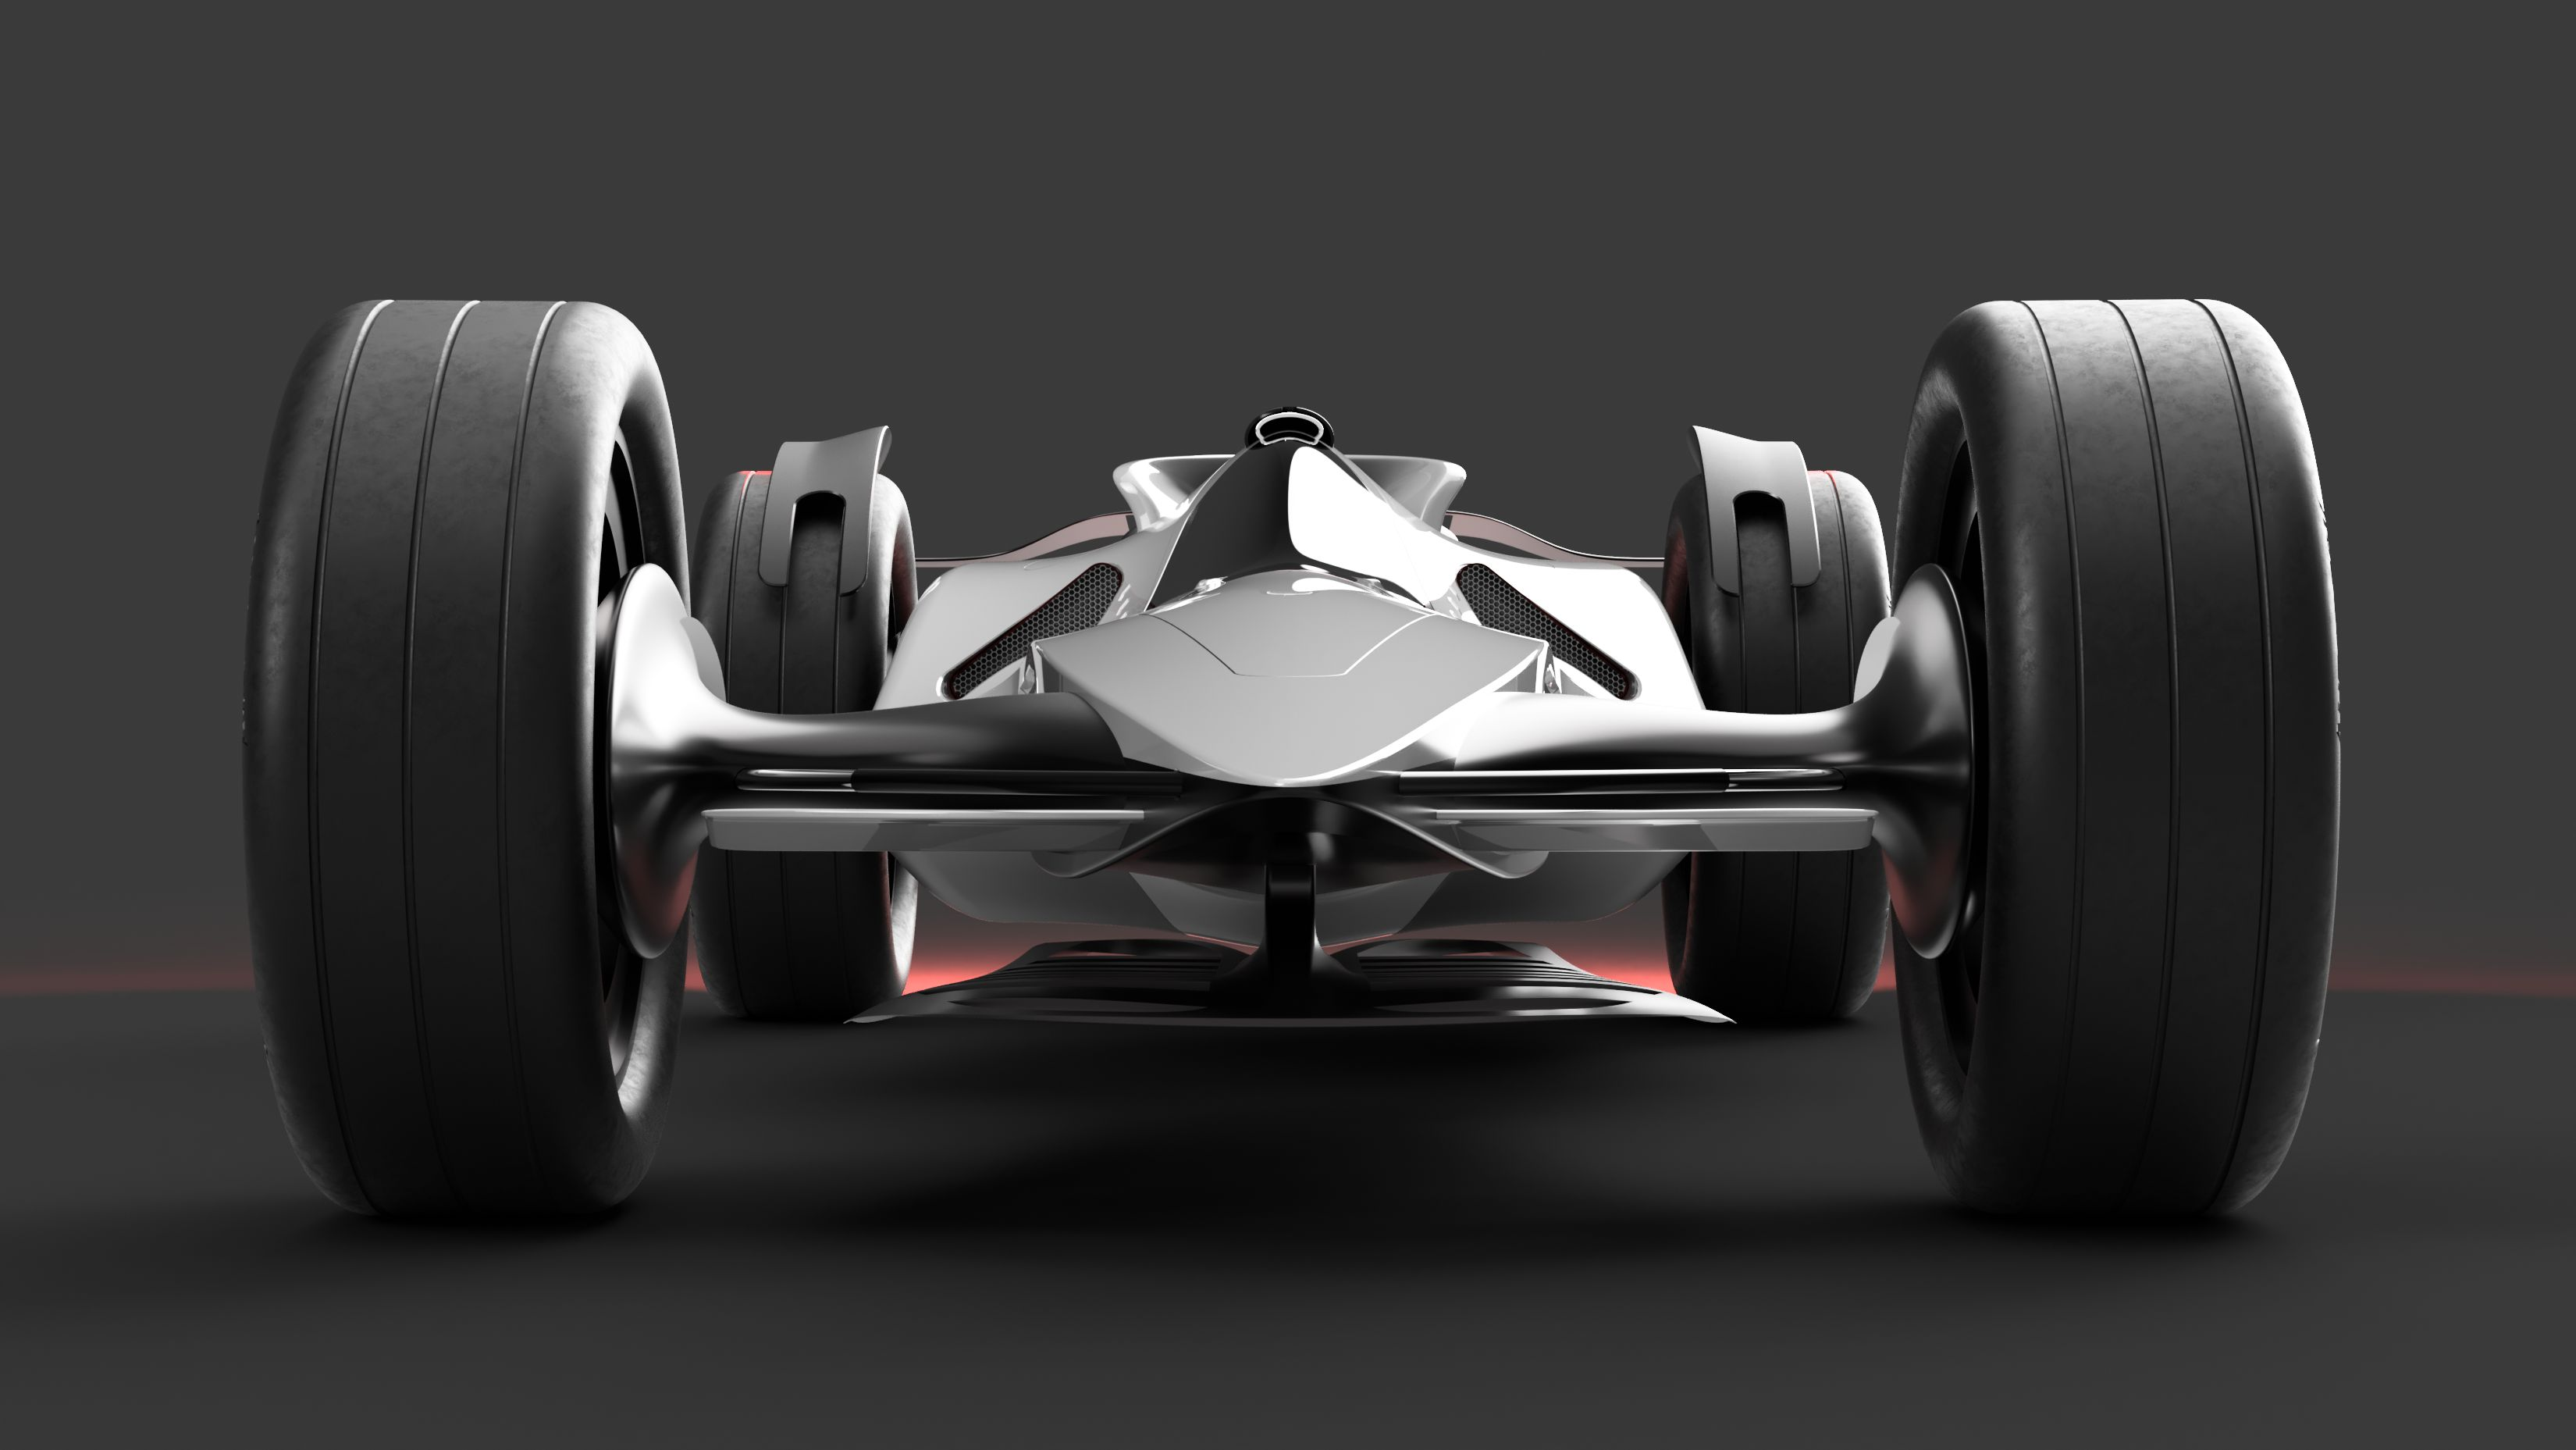 Updated-autodesk-car-2017-jan-16-01-03-39am-000-customizedview14983746673-3500-3500